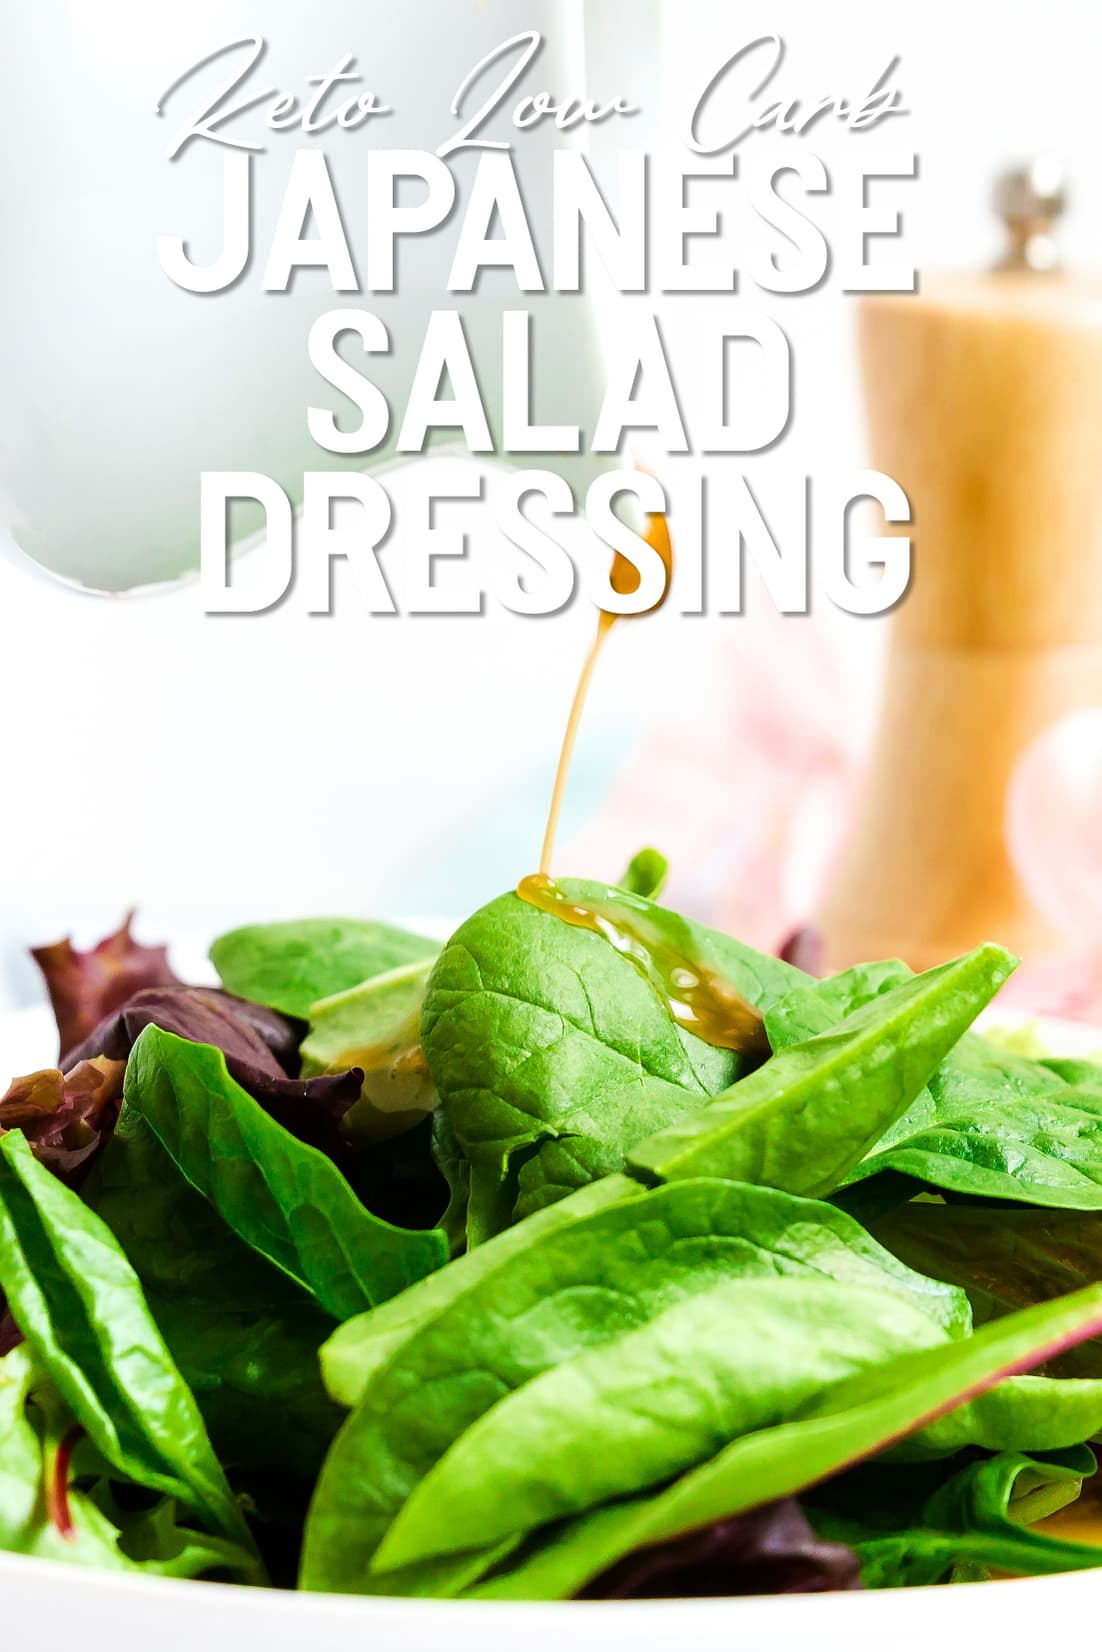 Keto Japanese Salad Dressing being poured onto a sping mixed salad